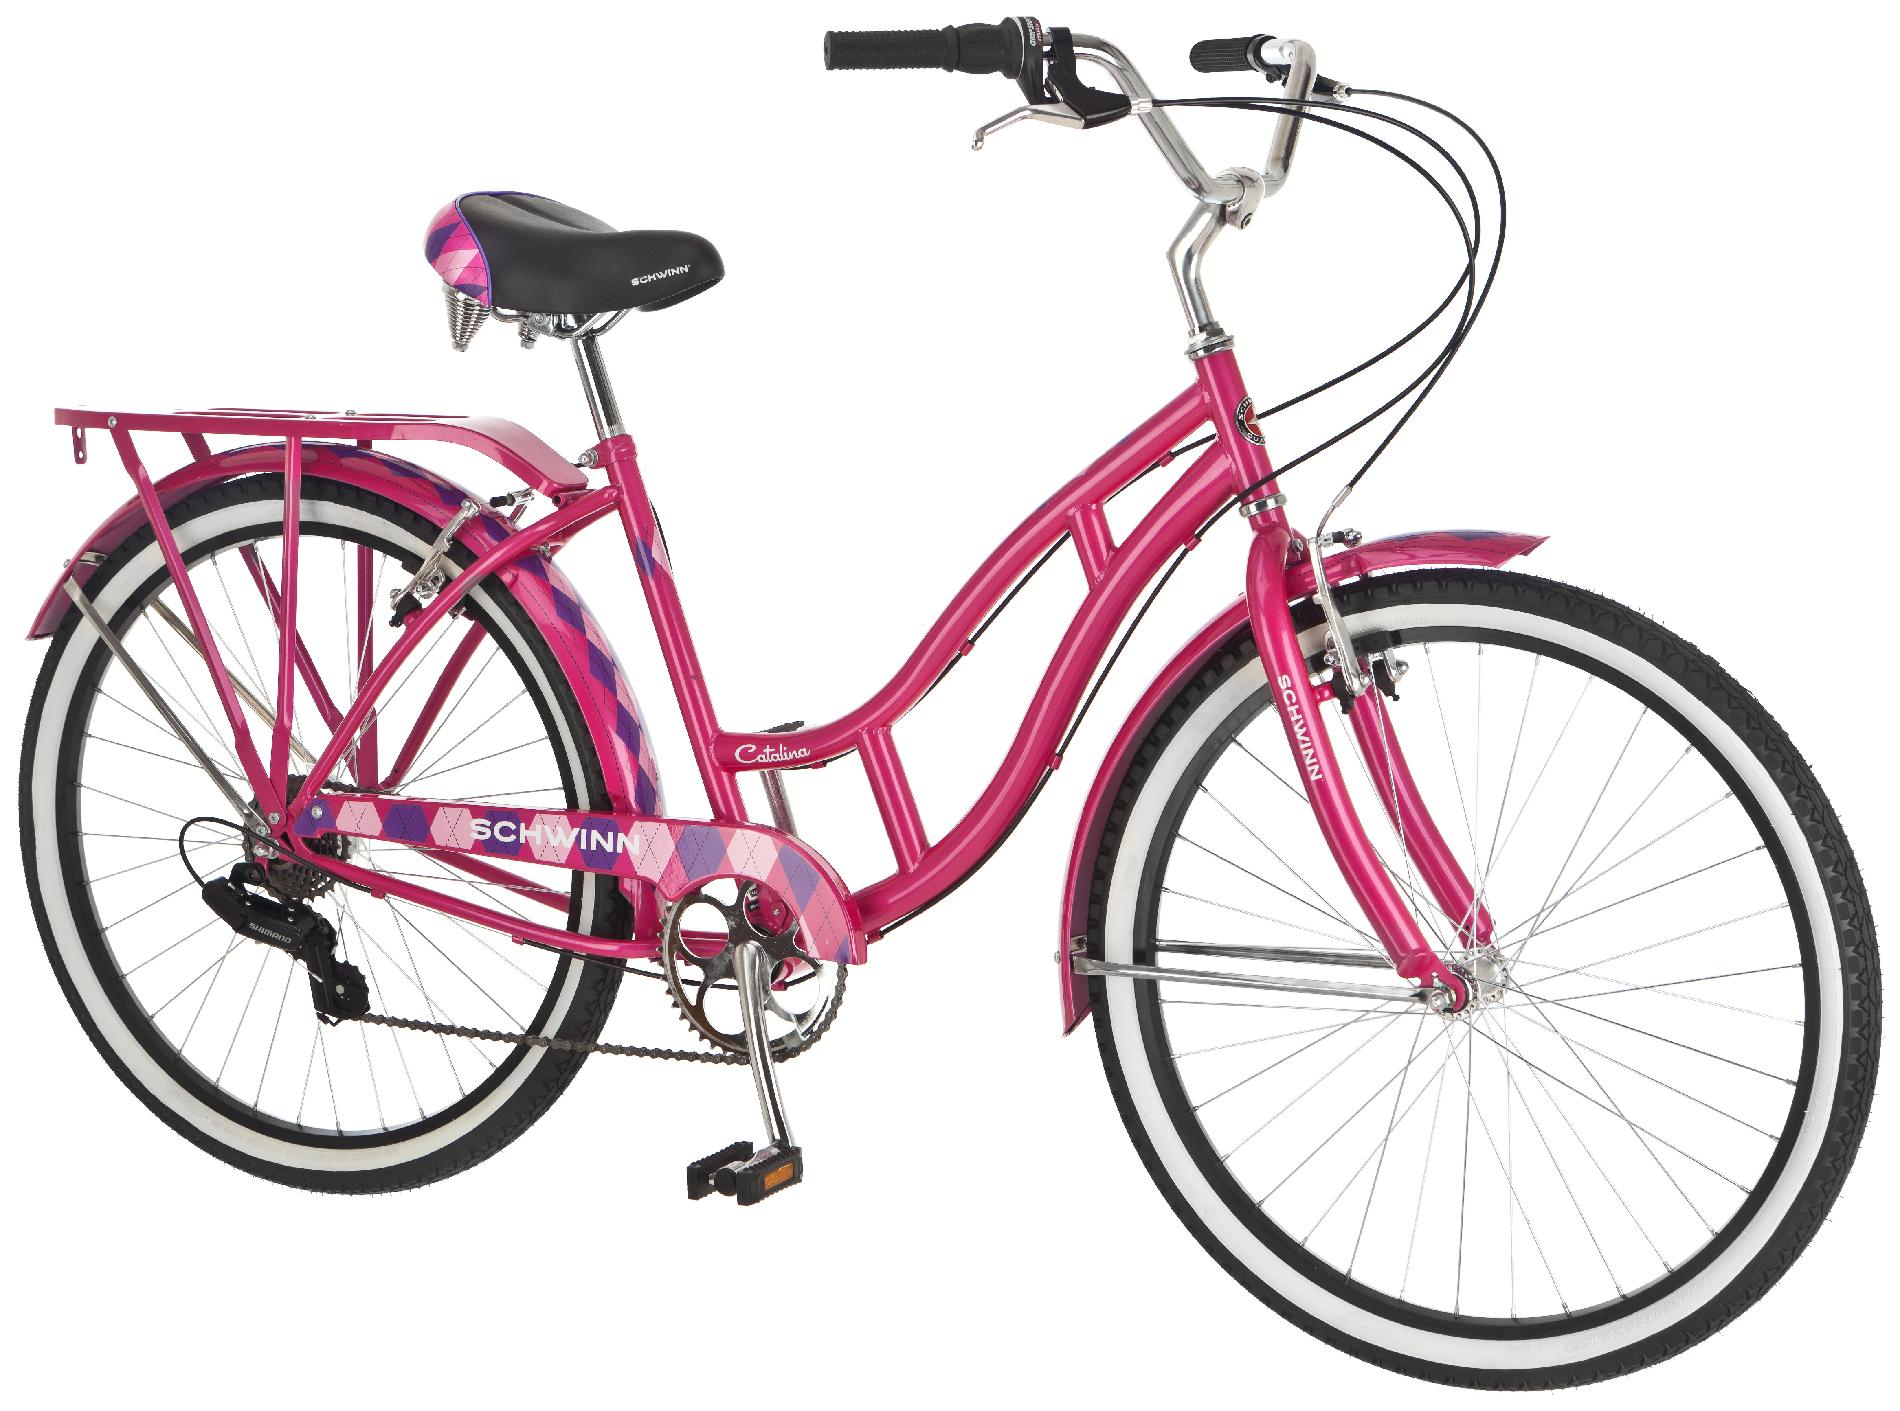 "Schwinn 26"" Women's Catalina Cruiser Bike"